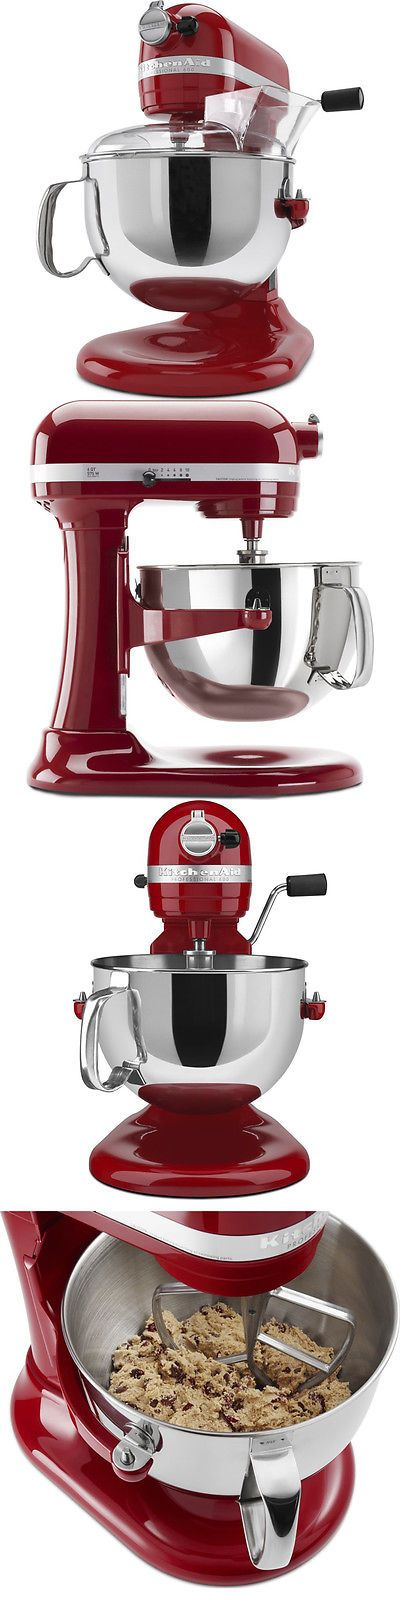 Mixers Countertop 133701: Kitchenaid Kp26m1xer Pro 600 Series 6-Quart Stand Mixer -> BUY IT NOW ONLY: $449.99 on eBay!